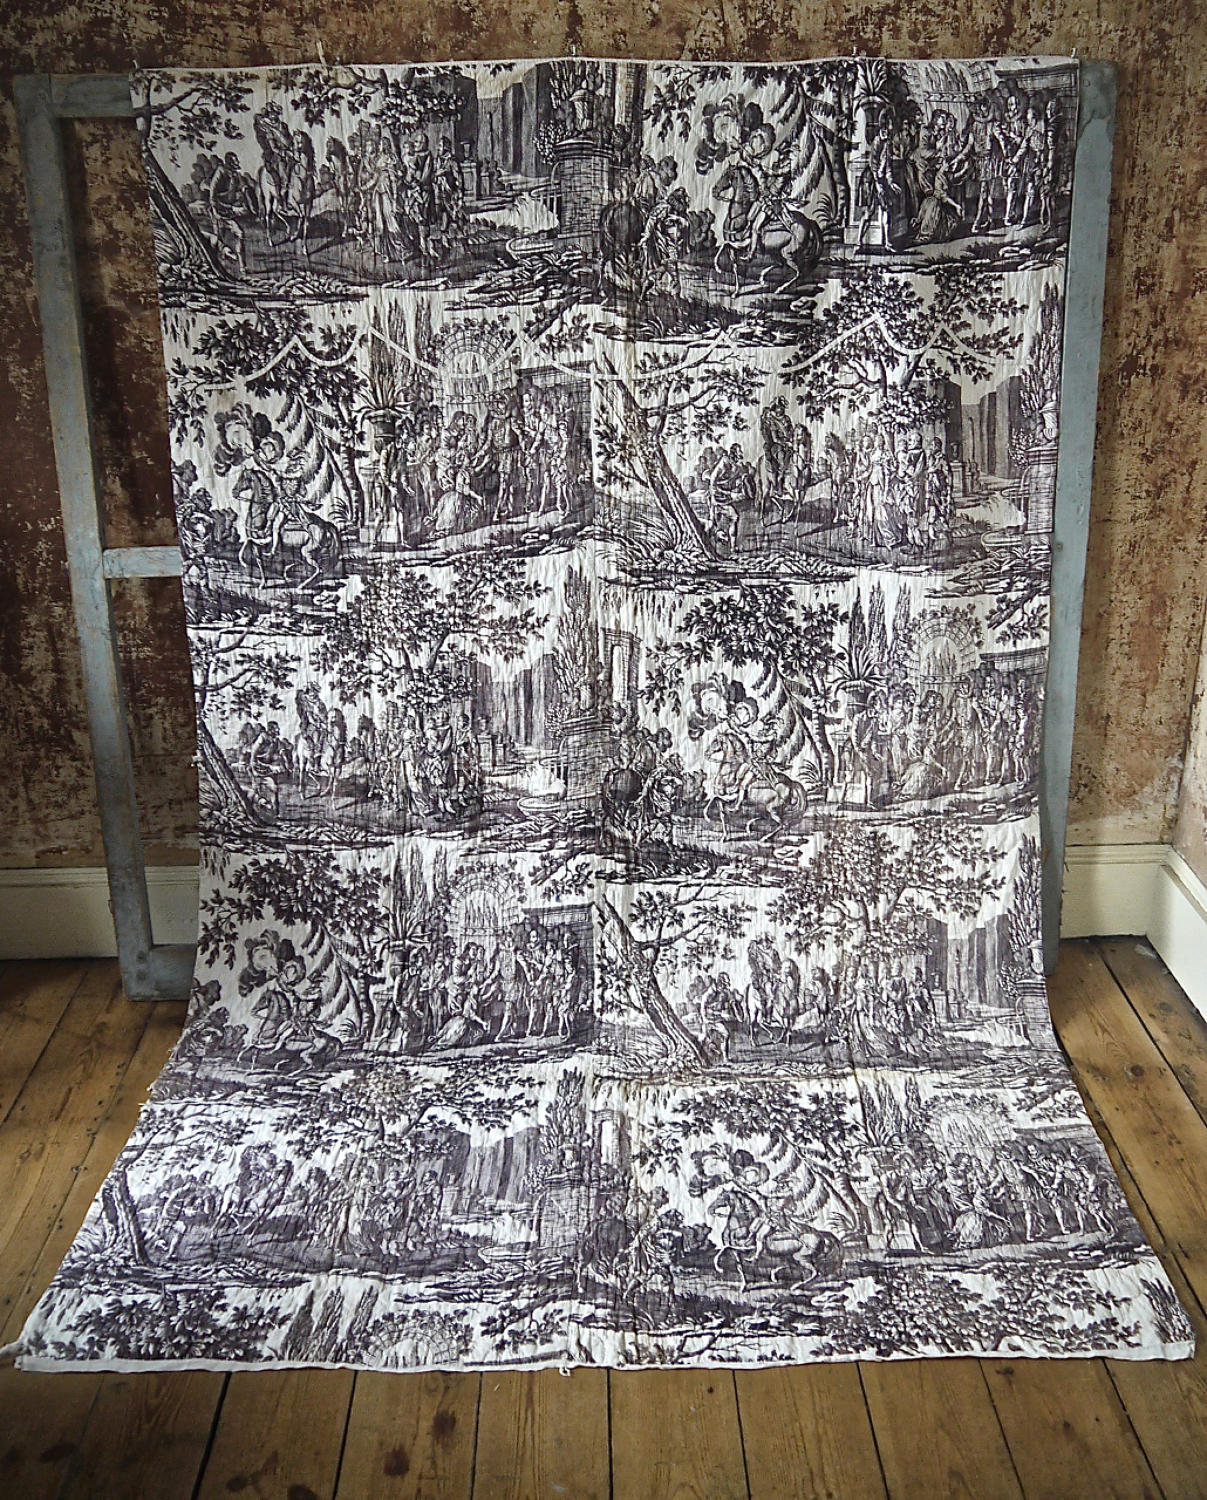 Purple Toile de Nantes Cotton Panel c.1805